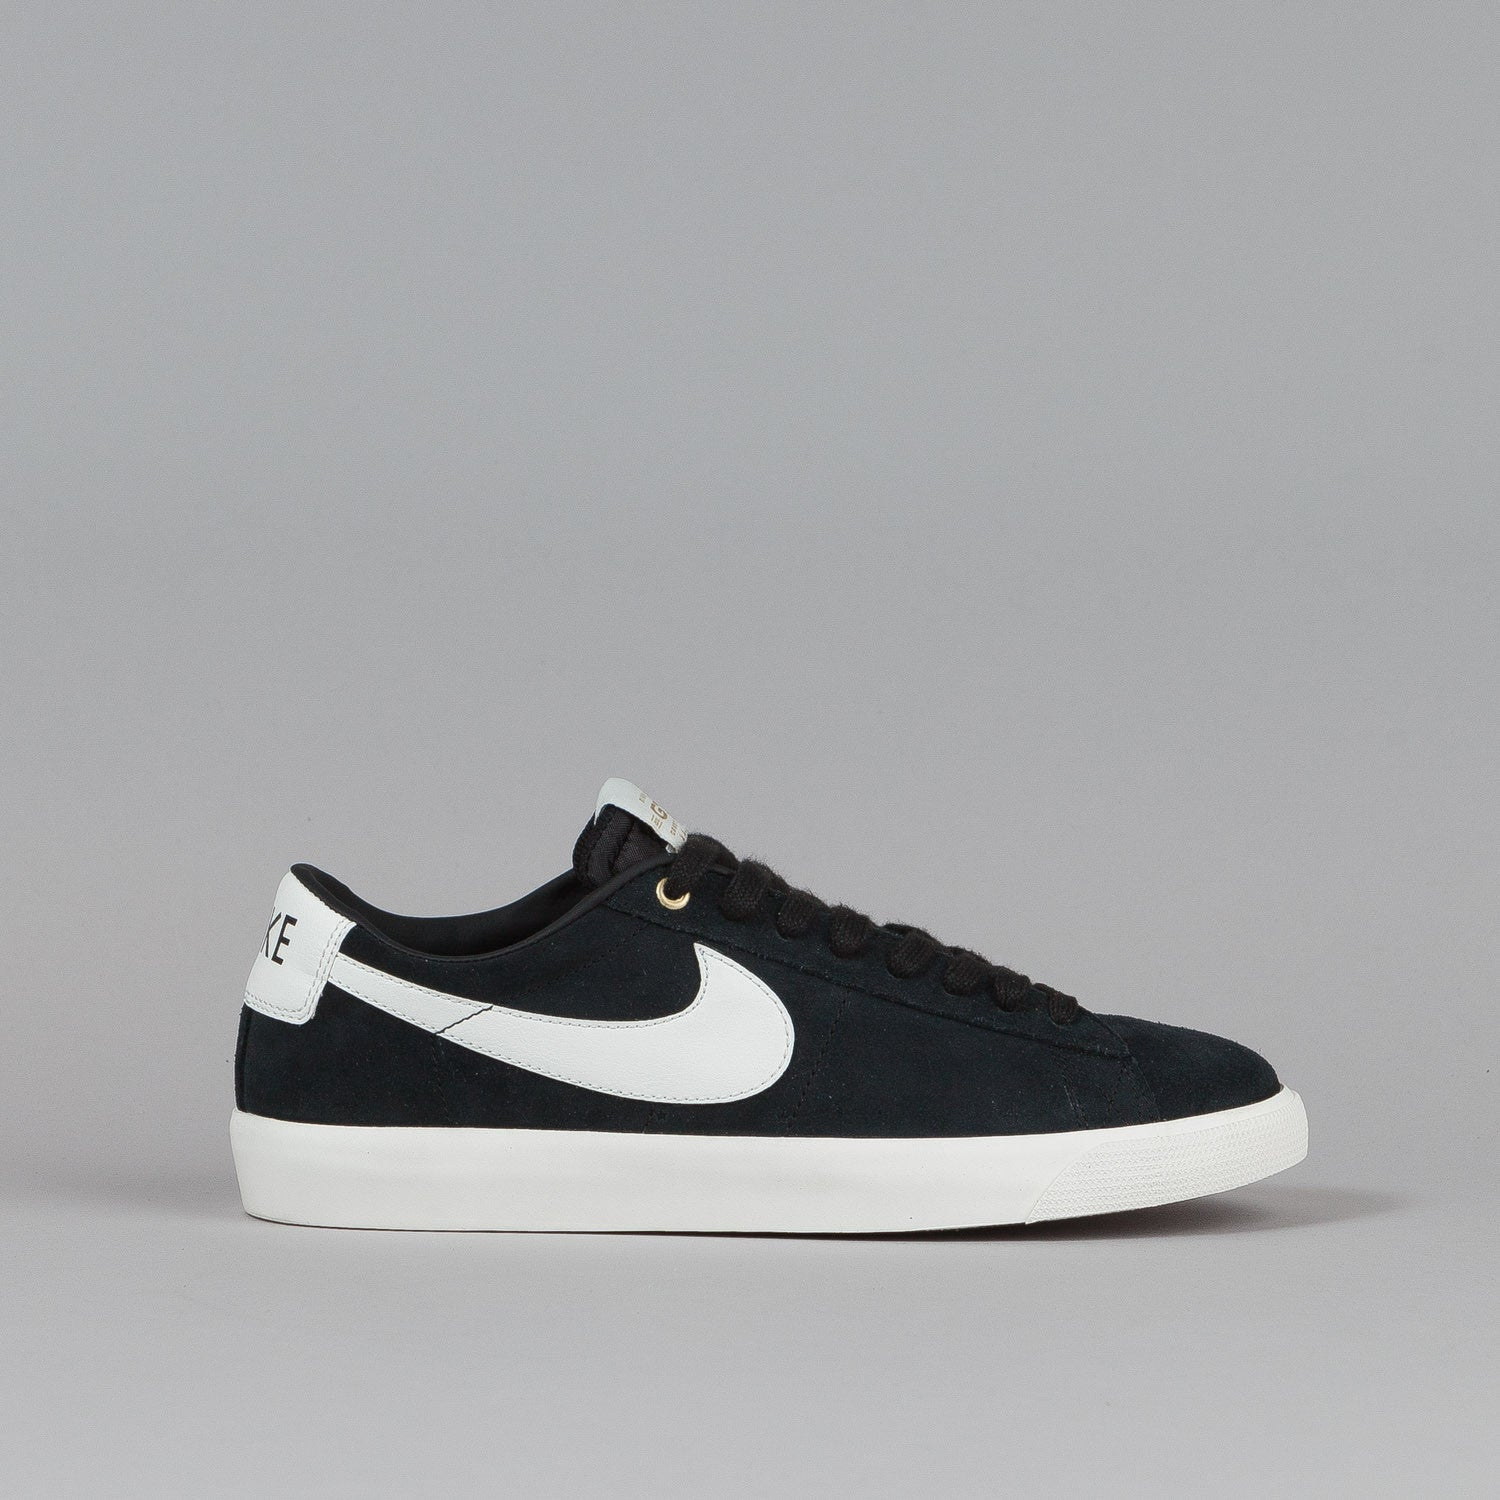 Nike SB Blazer Low GT Shoes Black